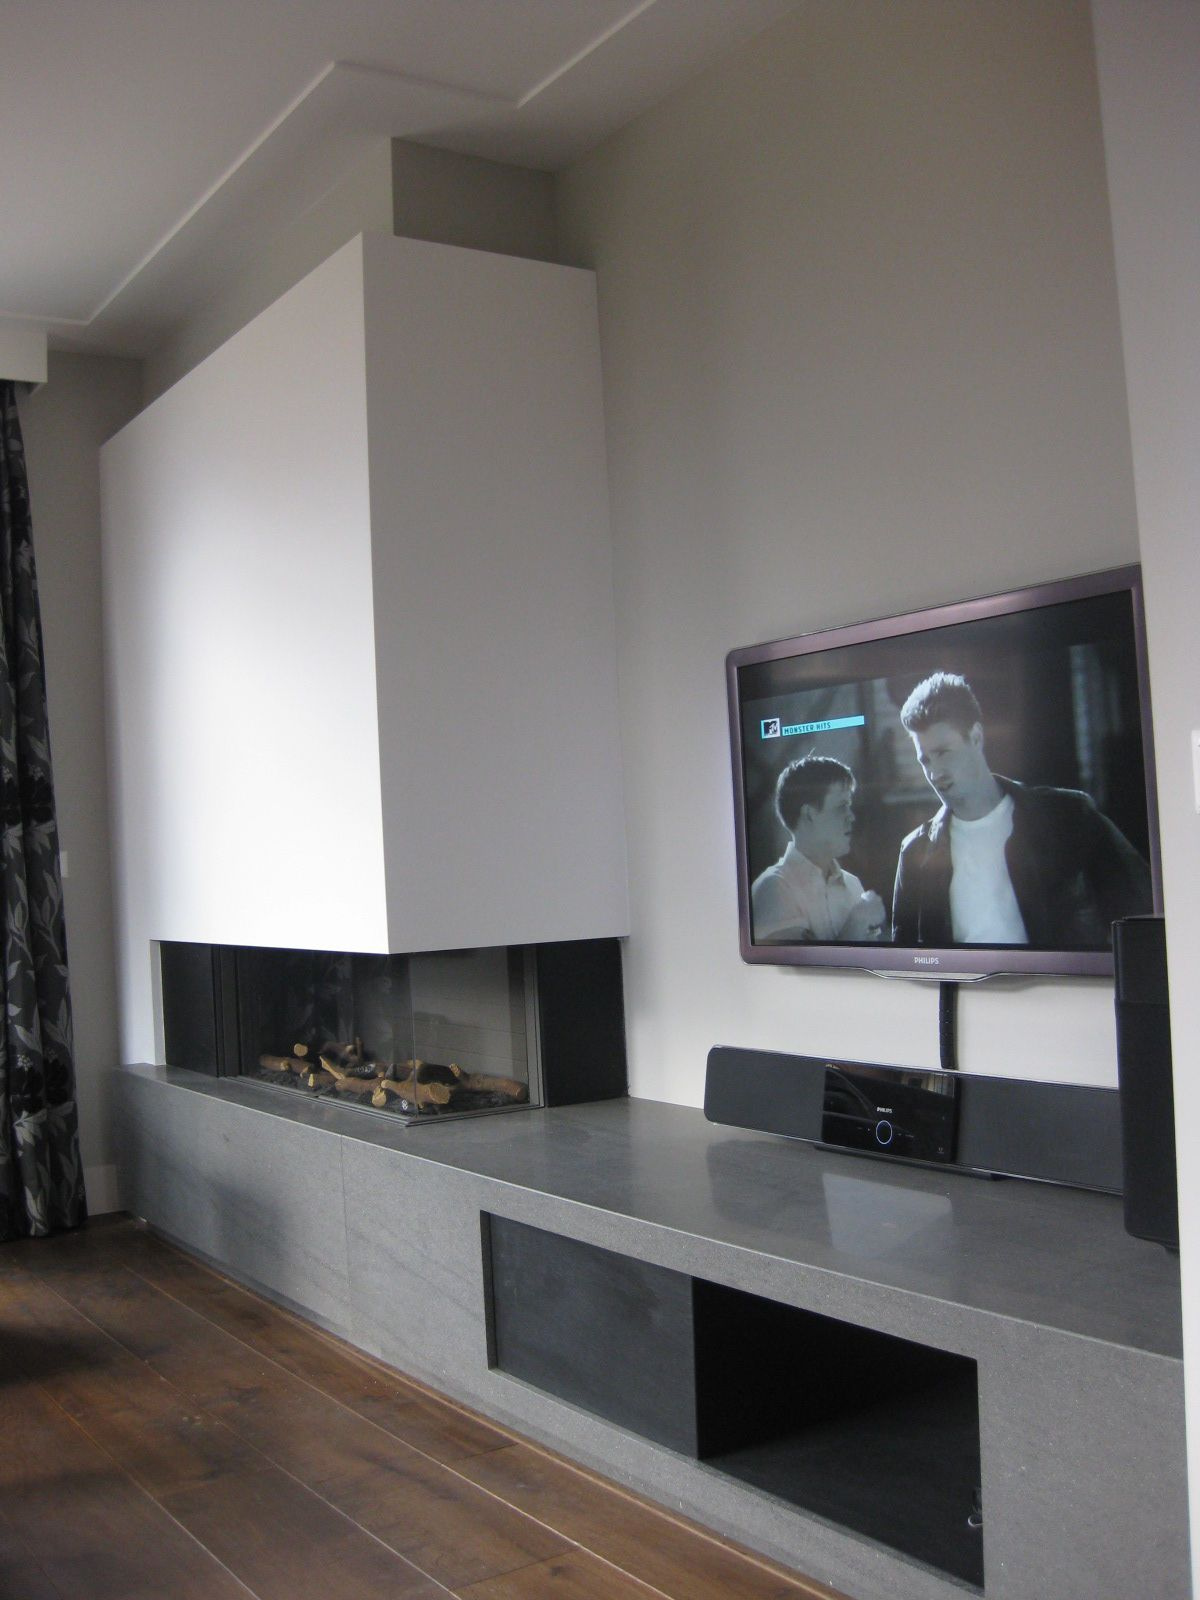 9 Like Asymmetrical Example With Fireplace In The First